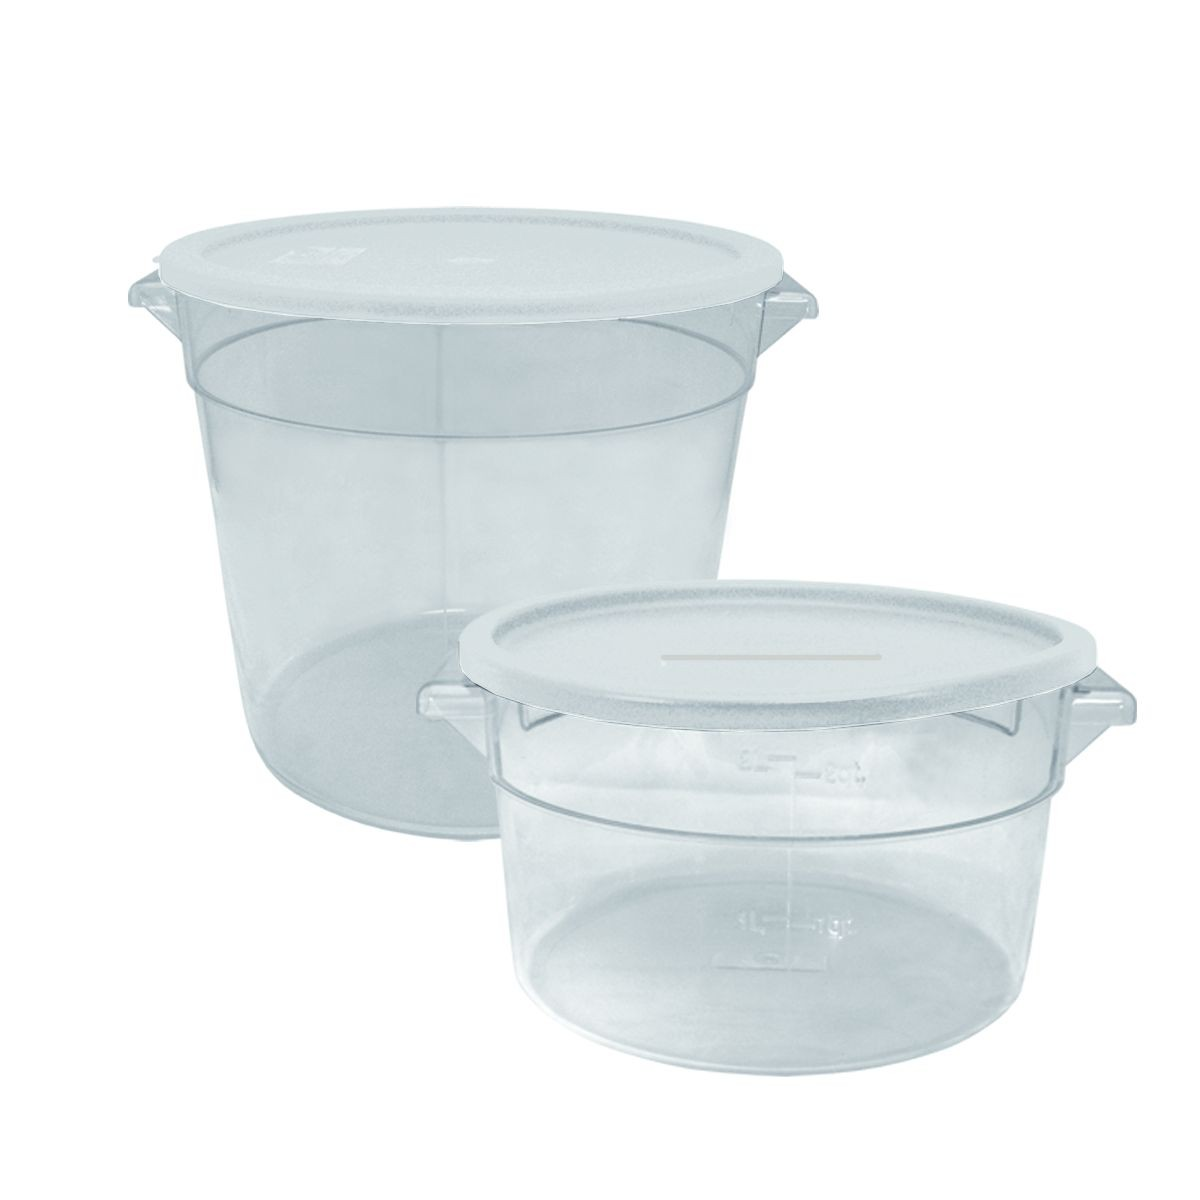 Update International SCR-2PC Round Polycarbonate 2 Qt. Storage Container